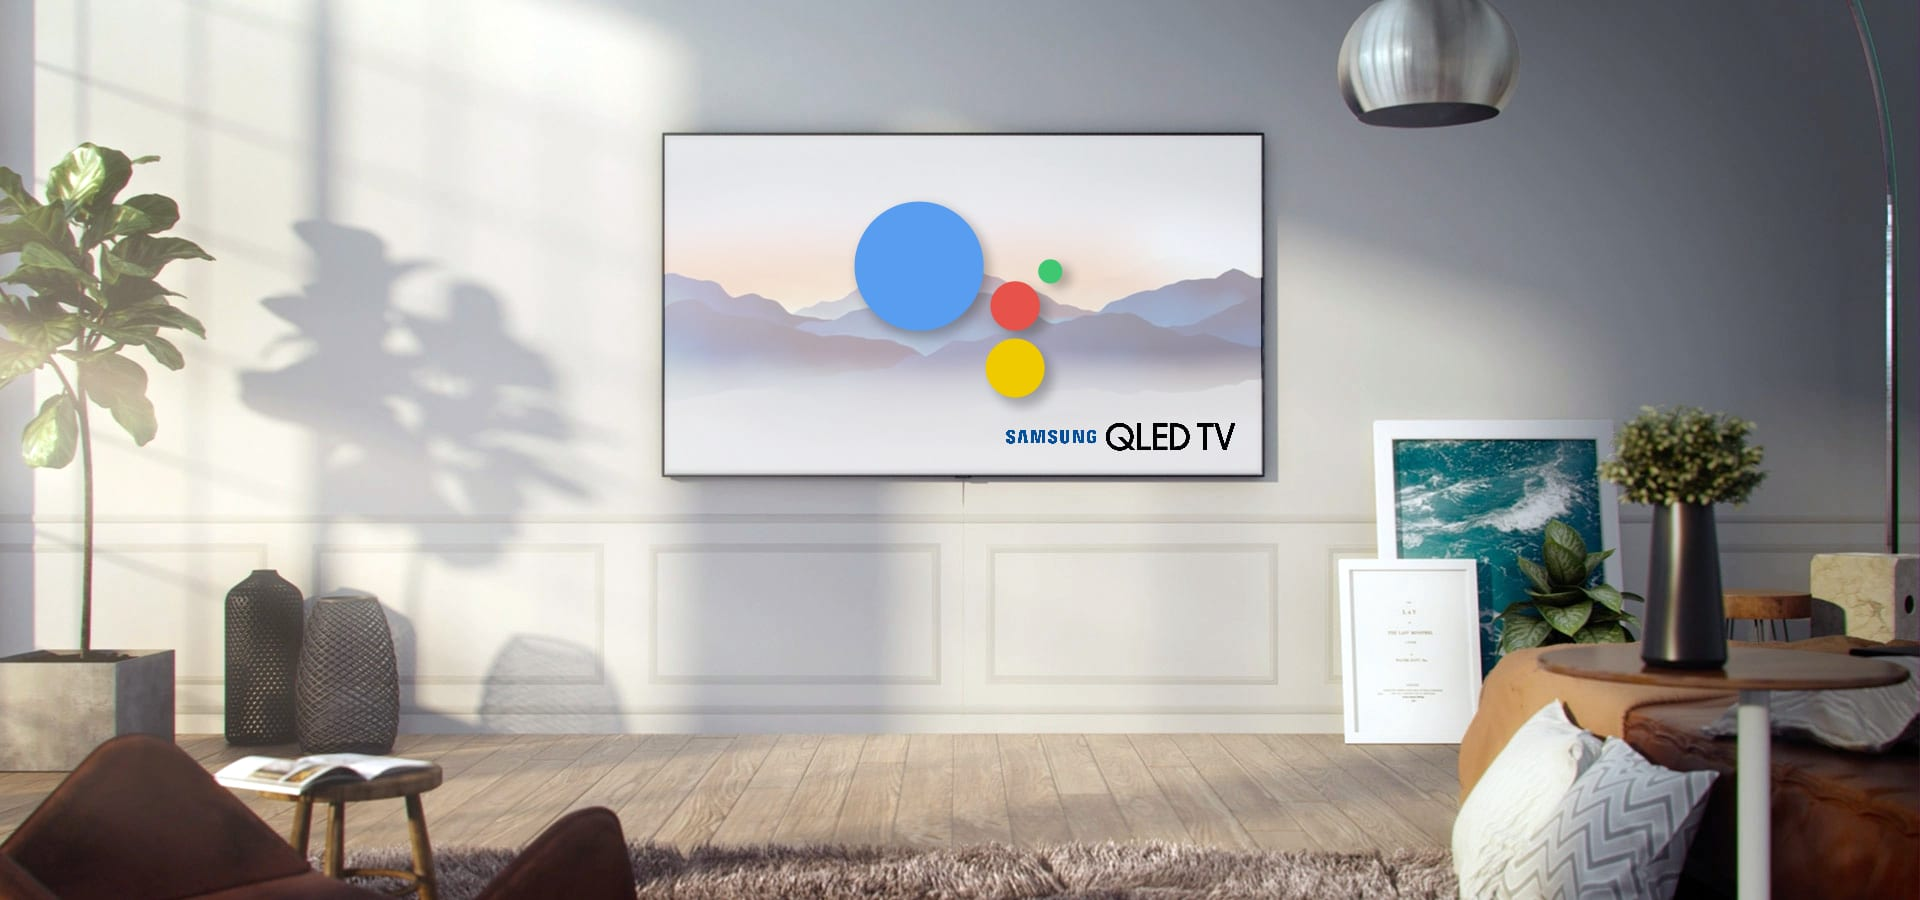 With Google Assistant Planned On 2019 TVs, Samsung Could End Up Ditching Bixby Altogether